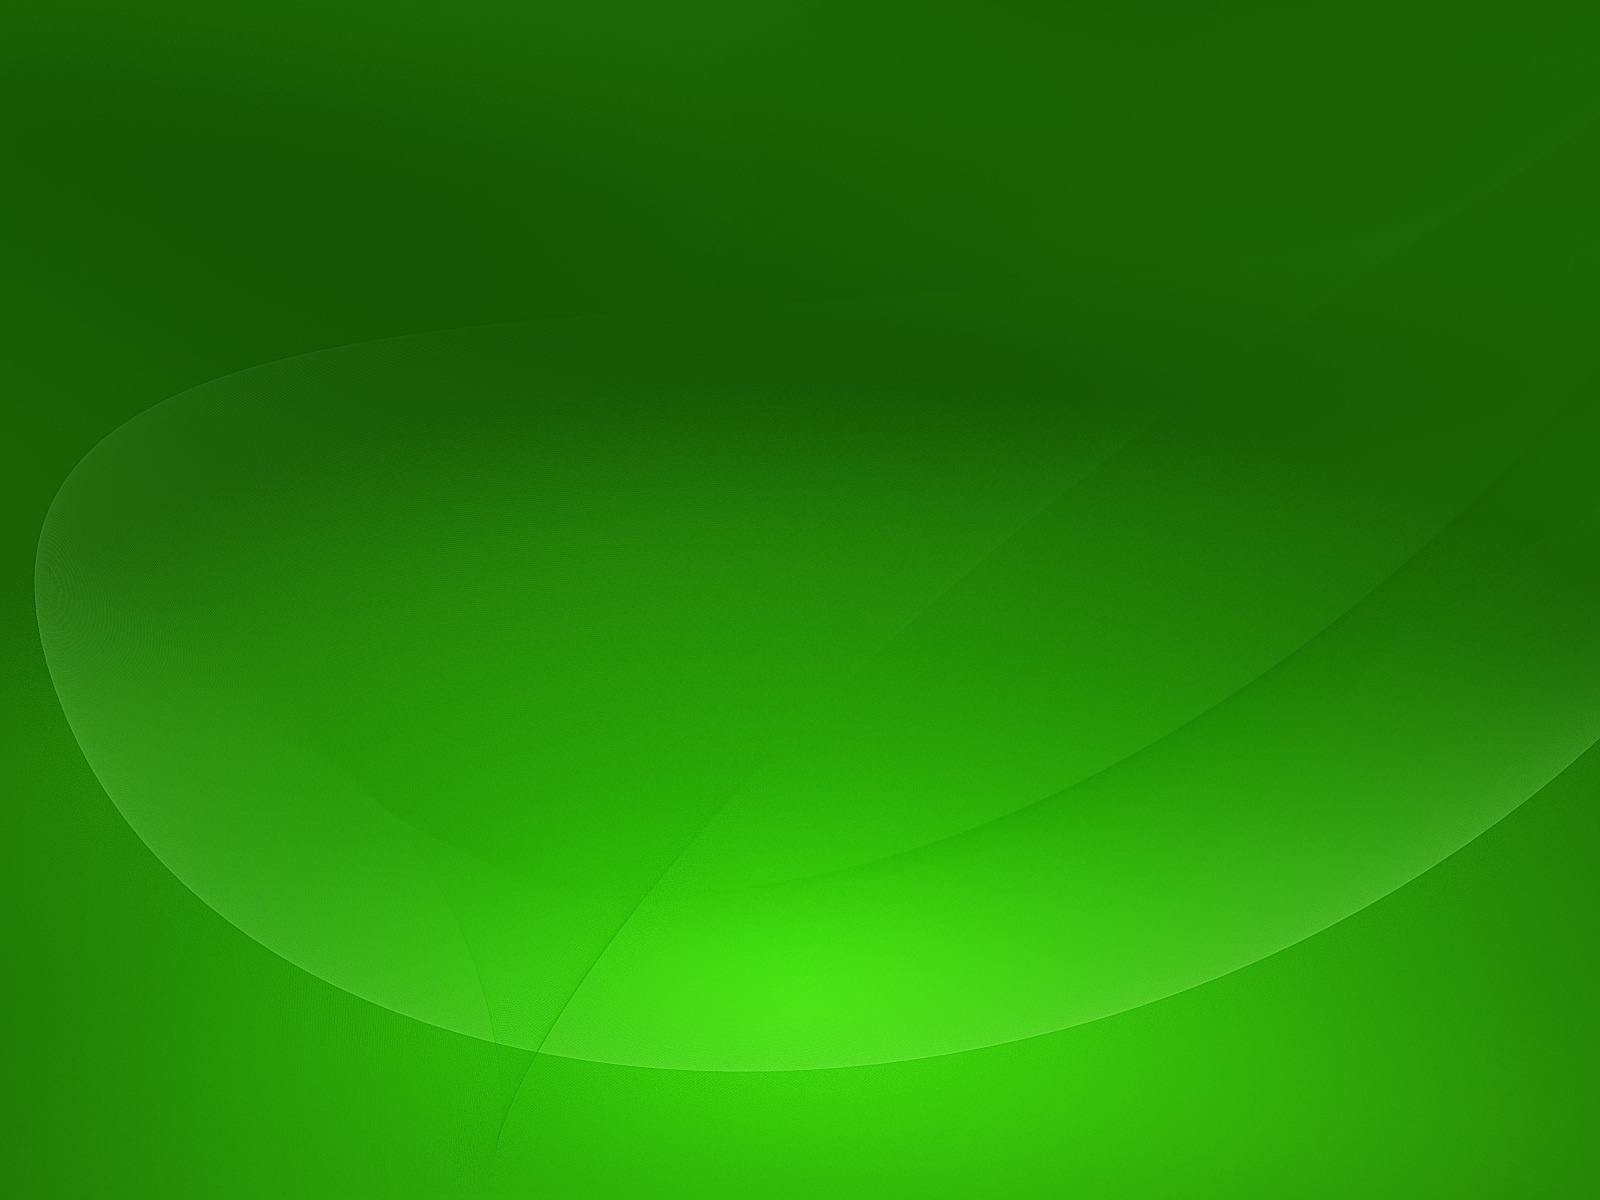 Abstract Wallpapers Hd Green Nice